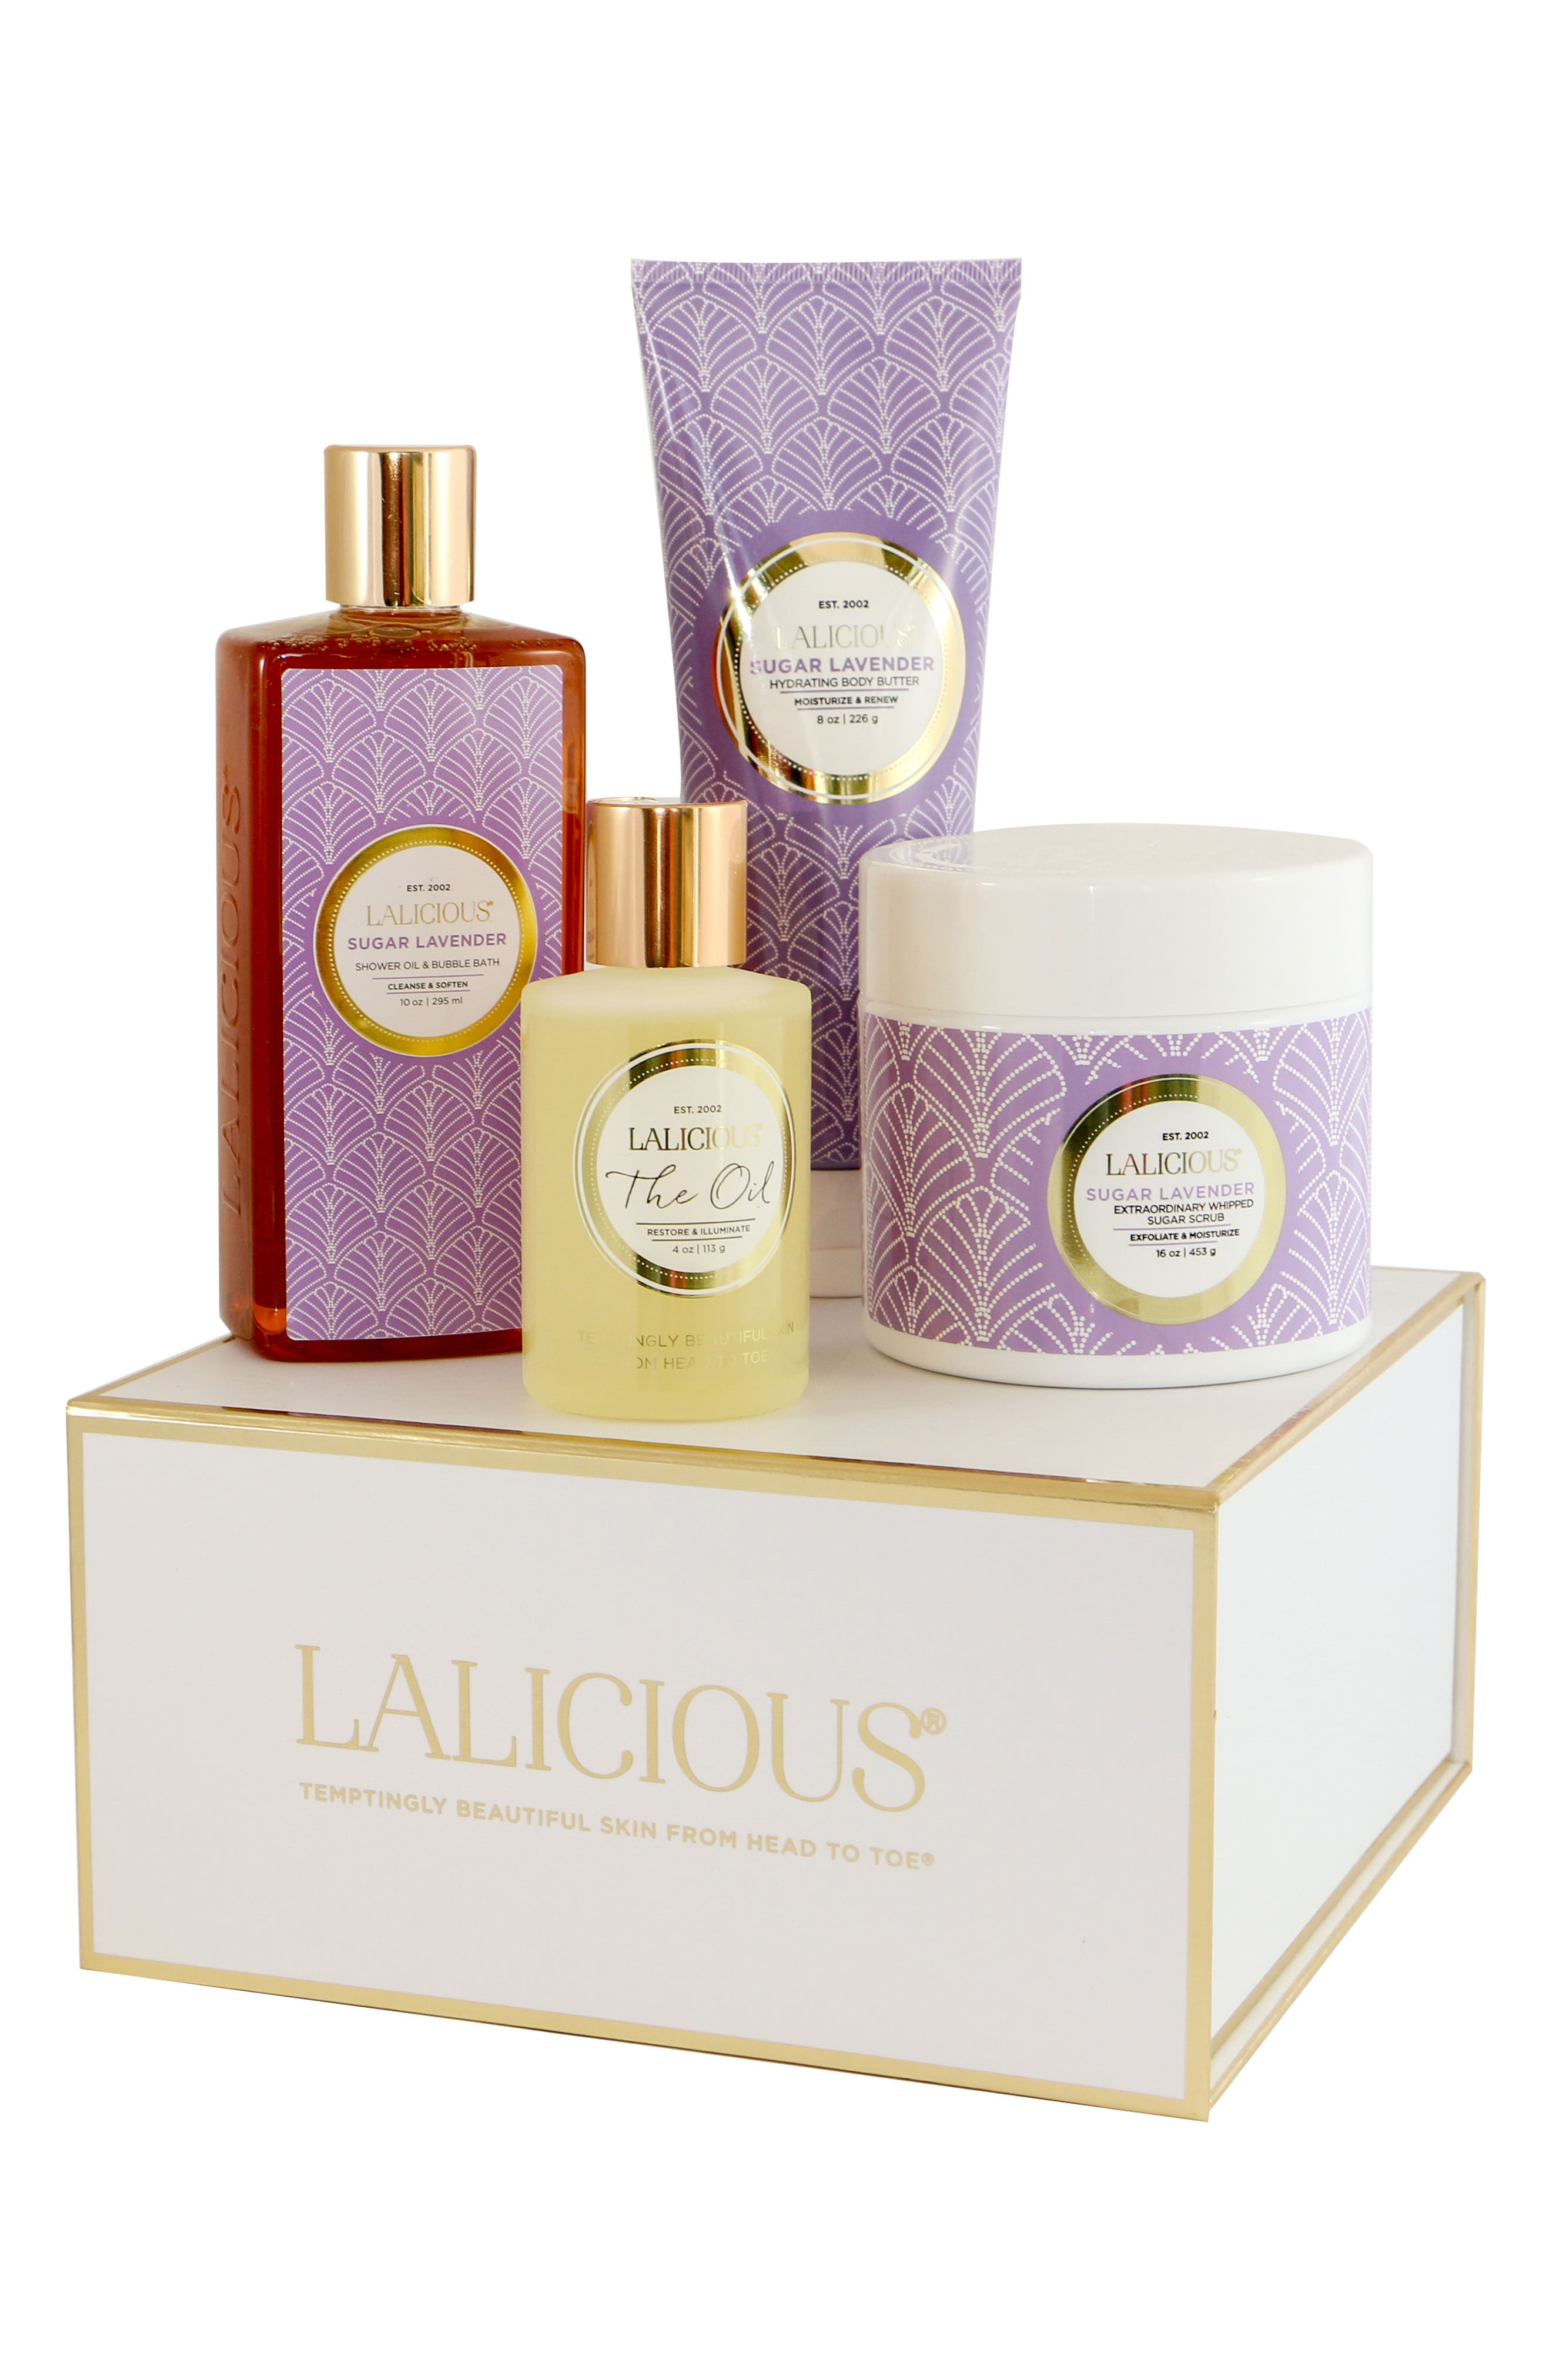 LALICIOUS Sugar Lavender At Home Spa Collection (Nordstrom Exclusive) ($117 Value)